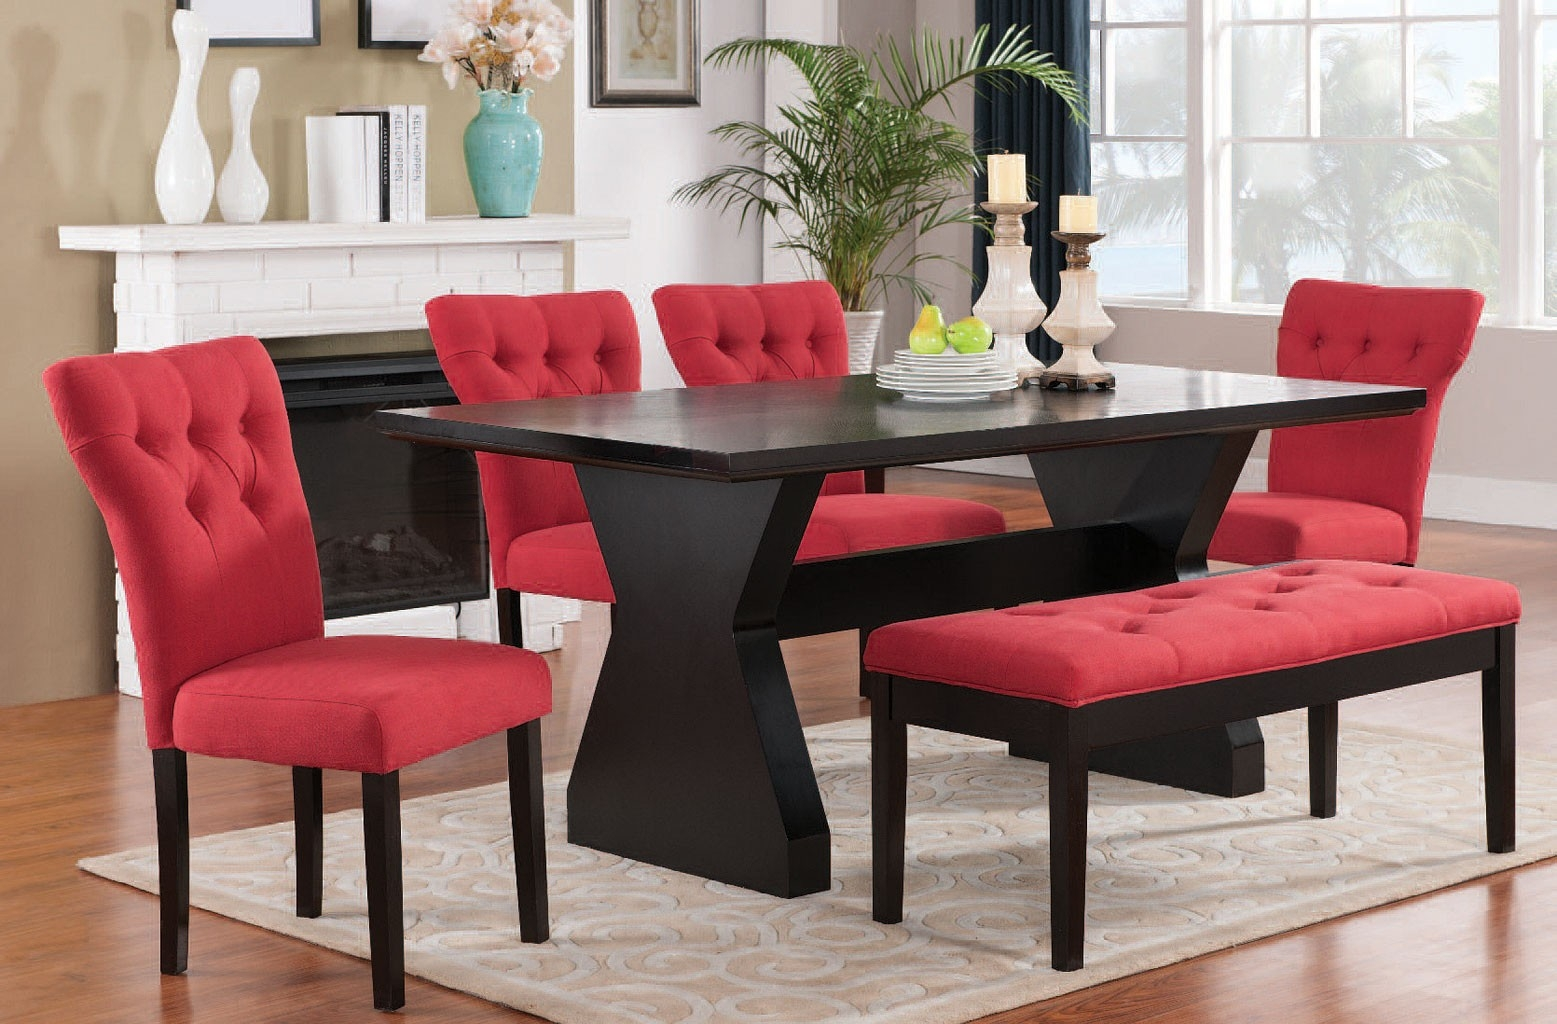 red dining chairs for your dining rooms home decor ideas